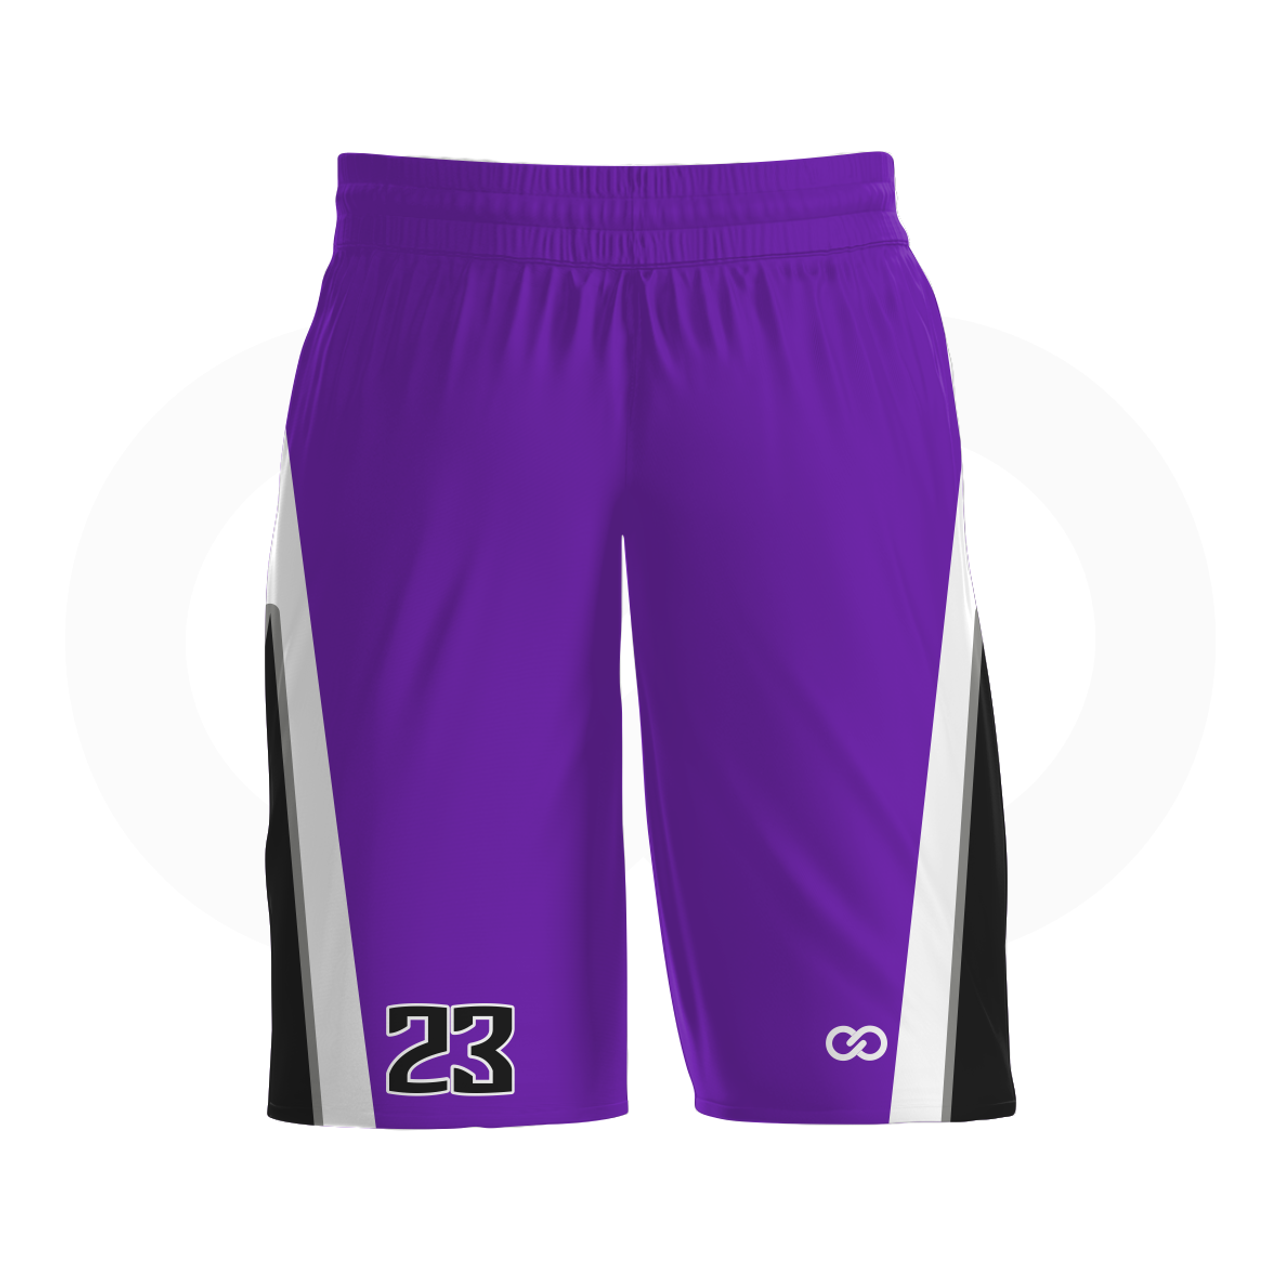 6f229a32326 Kings - Custom Basketball Shorts - Wooter Apparel